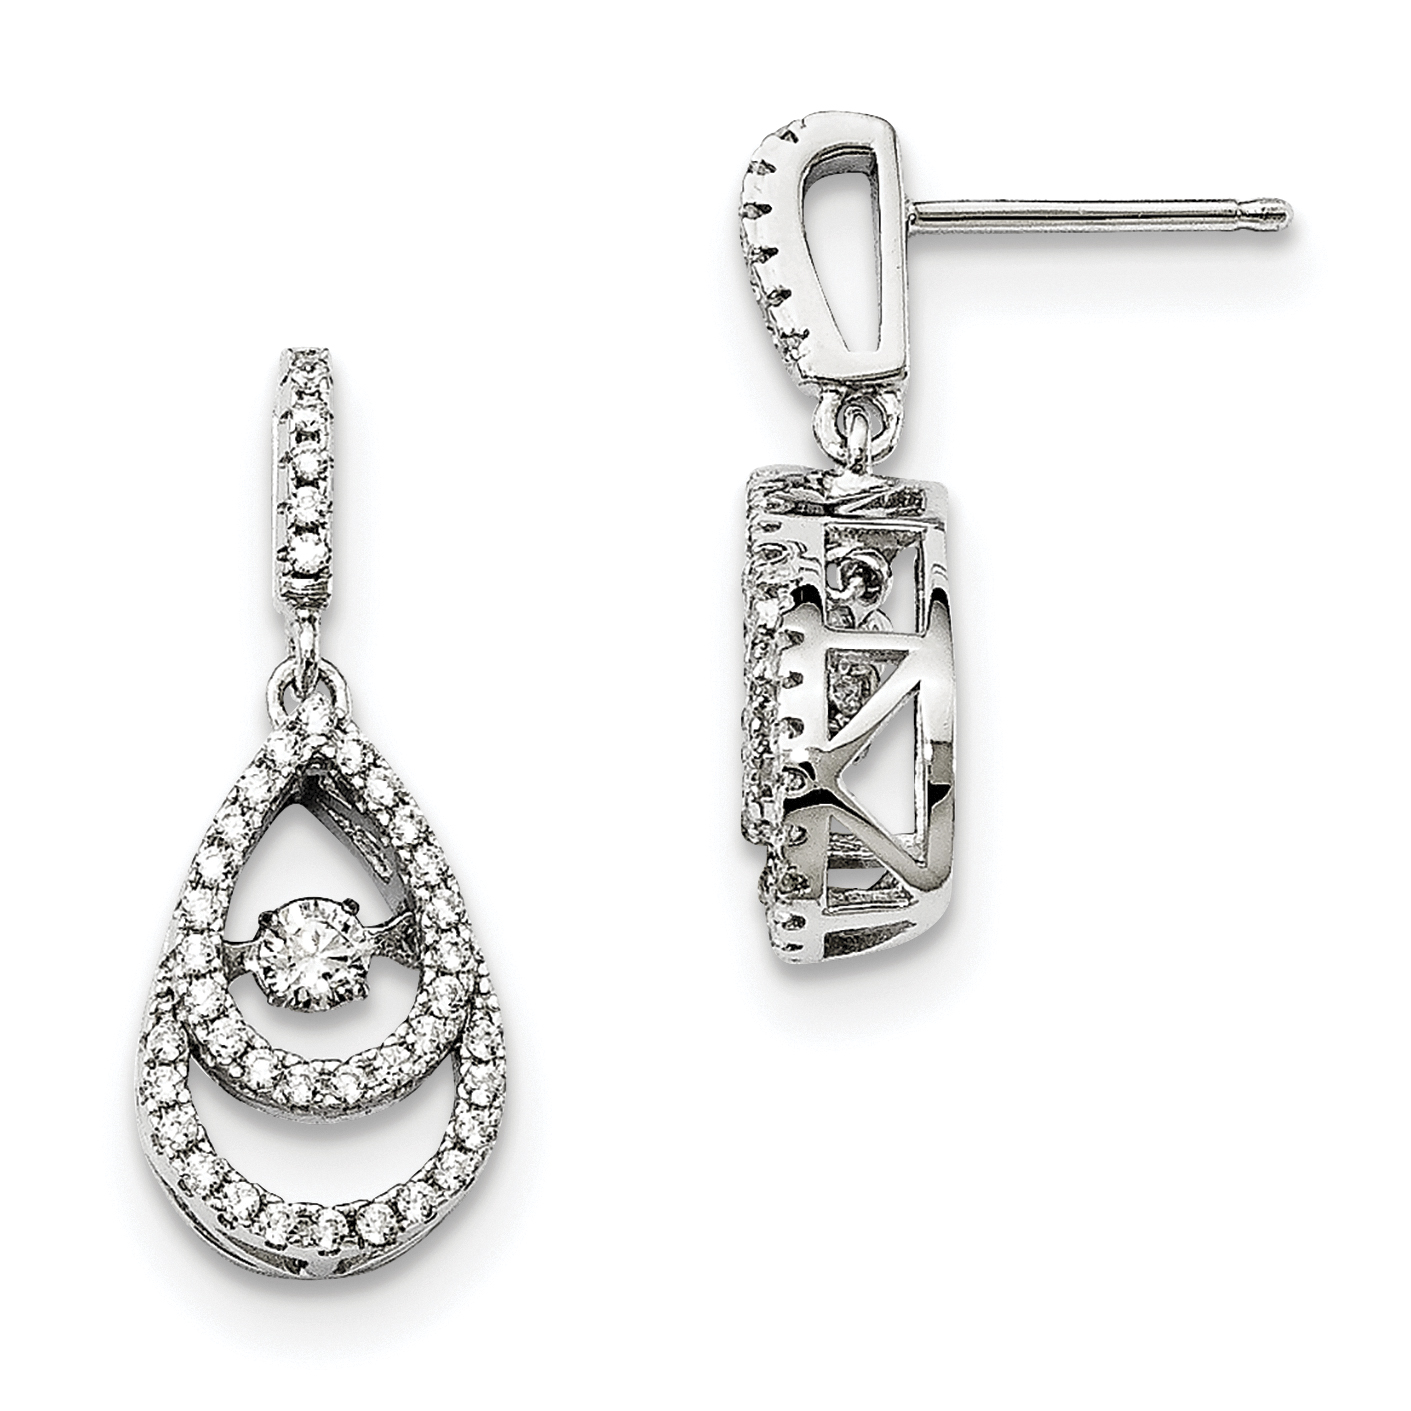 Sterling Silver & Vibrant CZ Brilliant Embers Earrings QMP1398 - image 2 of 2